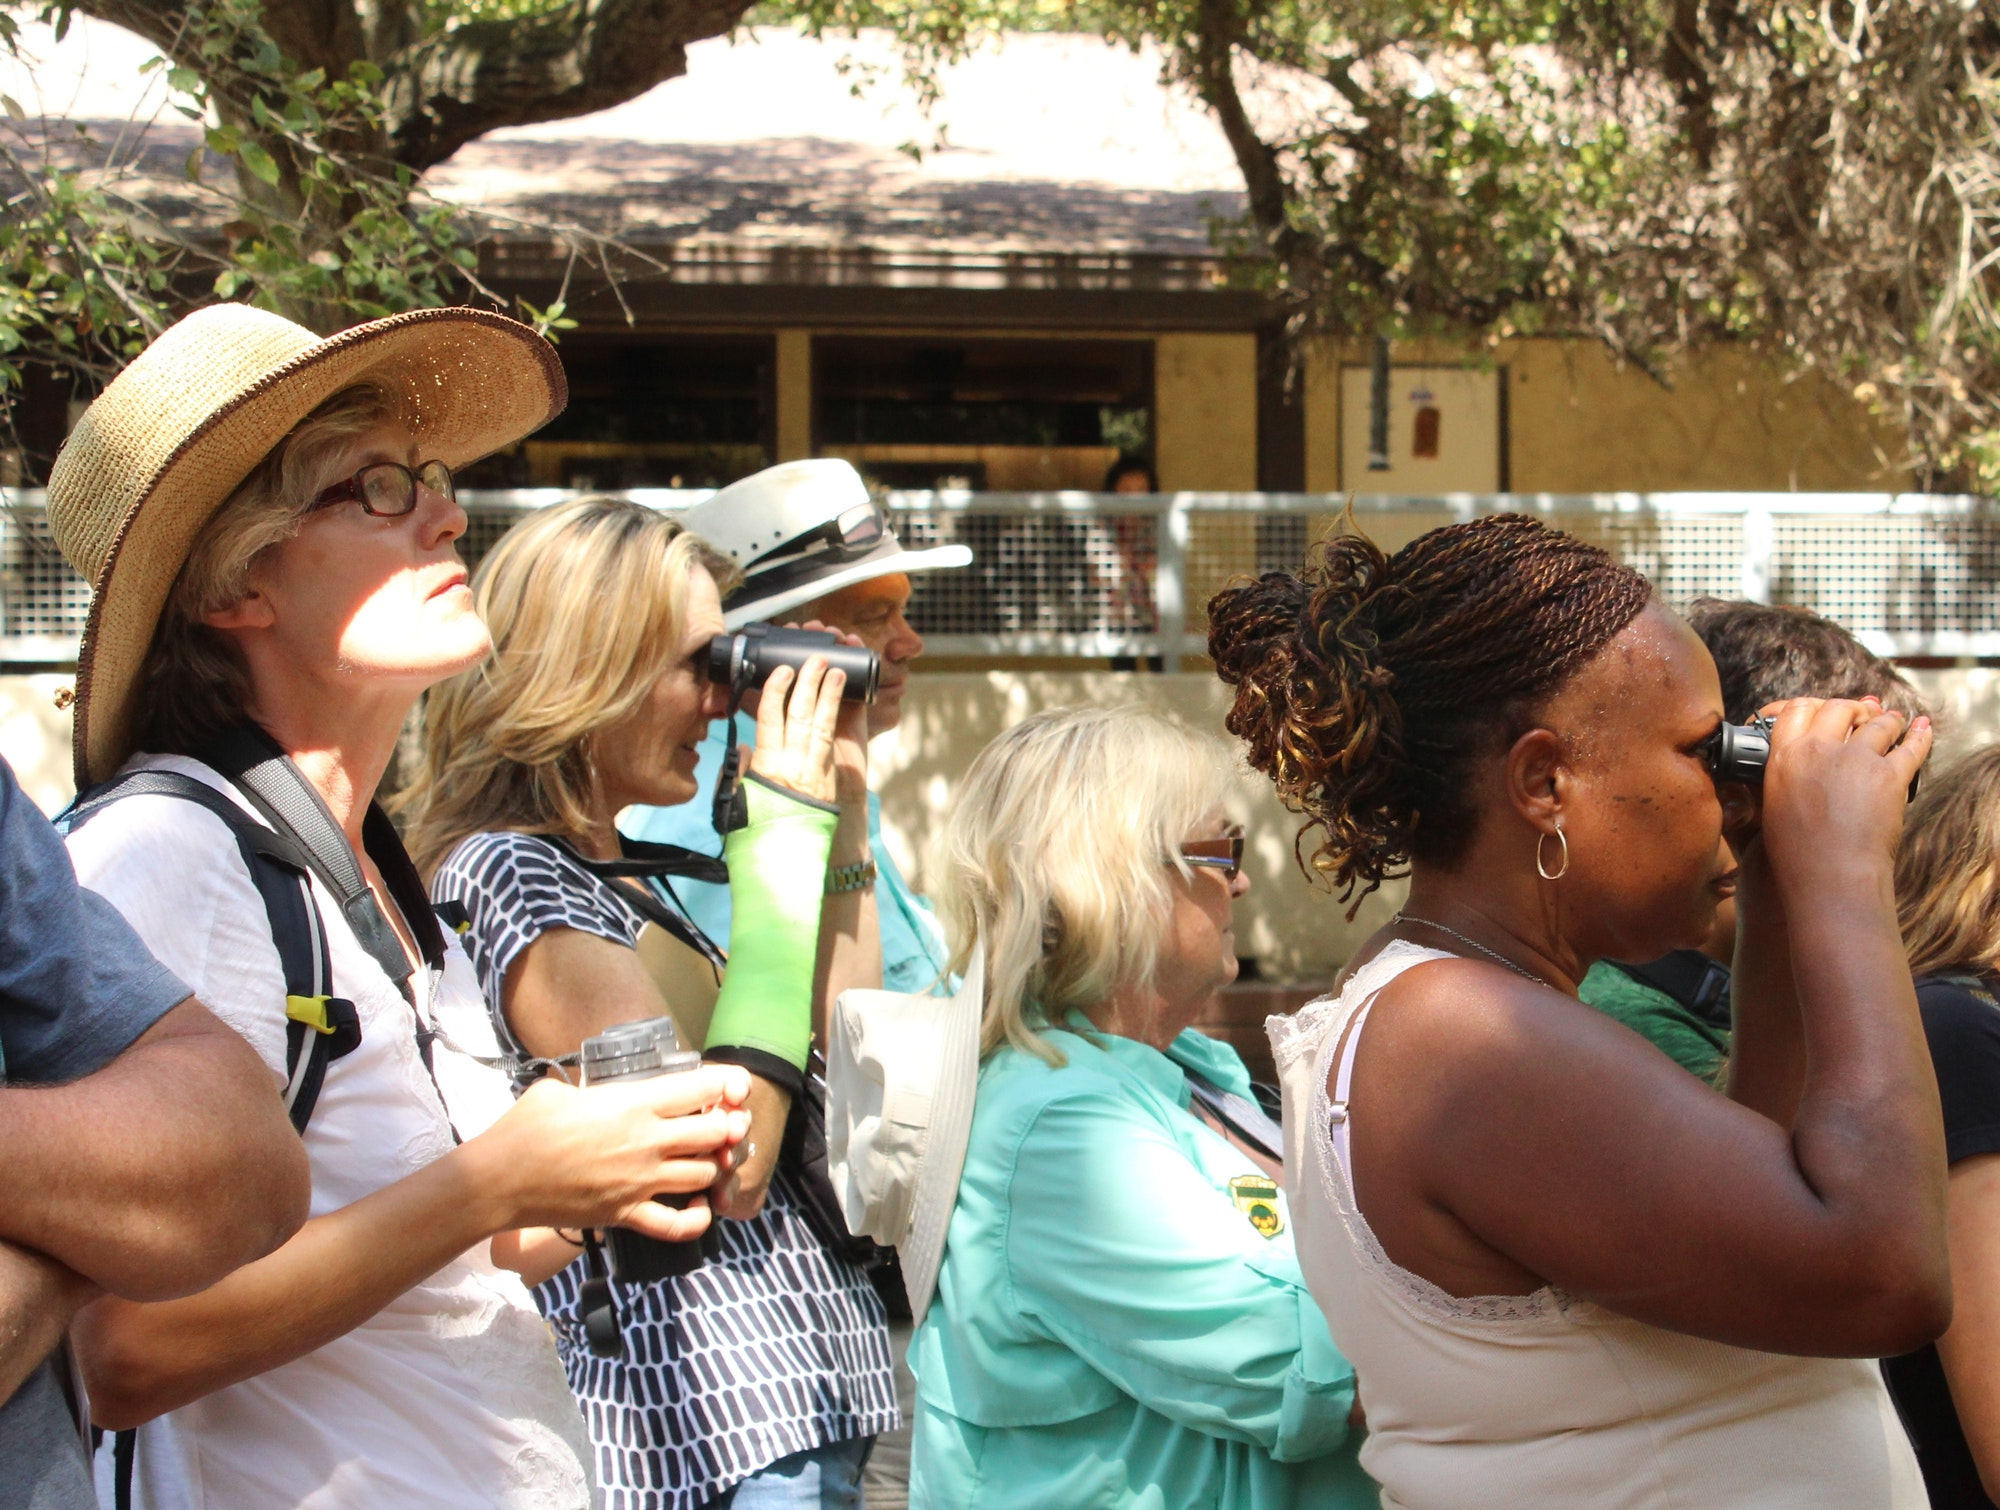 Image of adults using binoculars to observe nature outside.